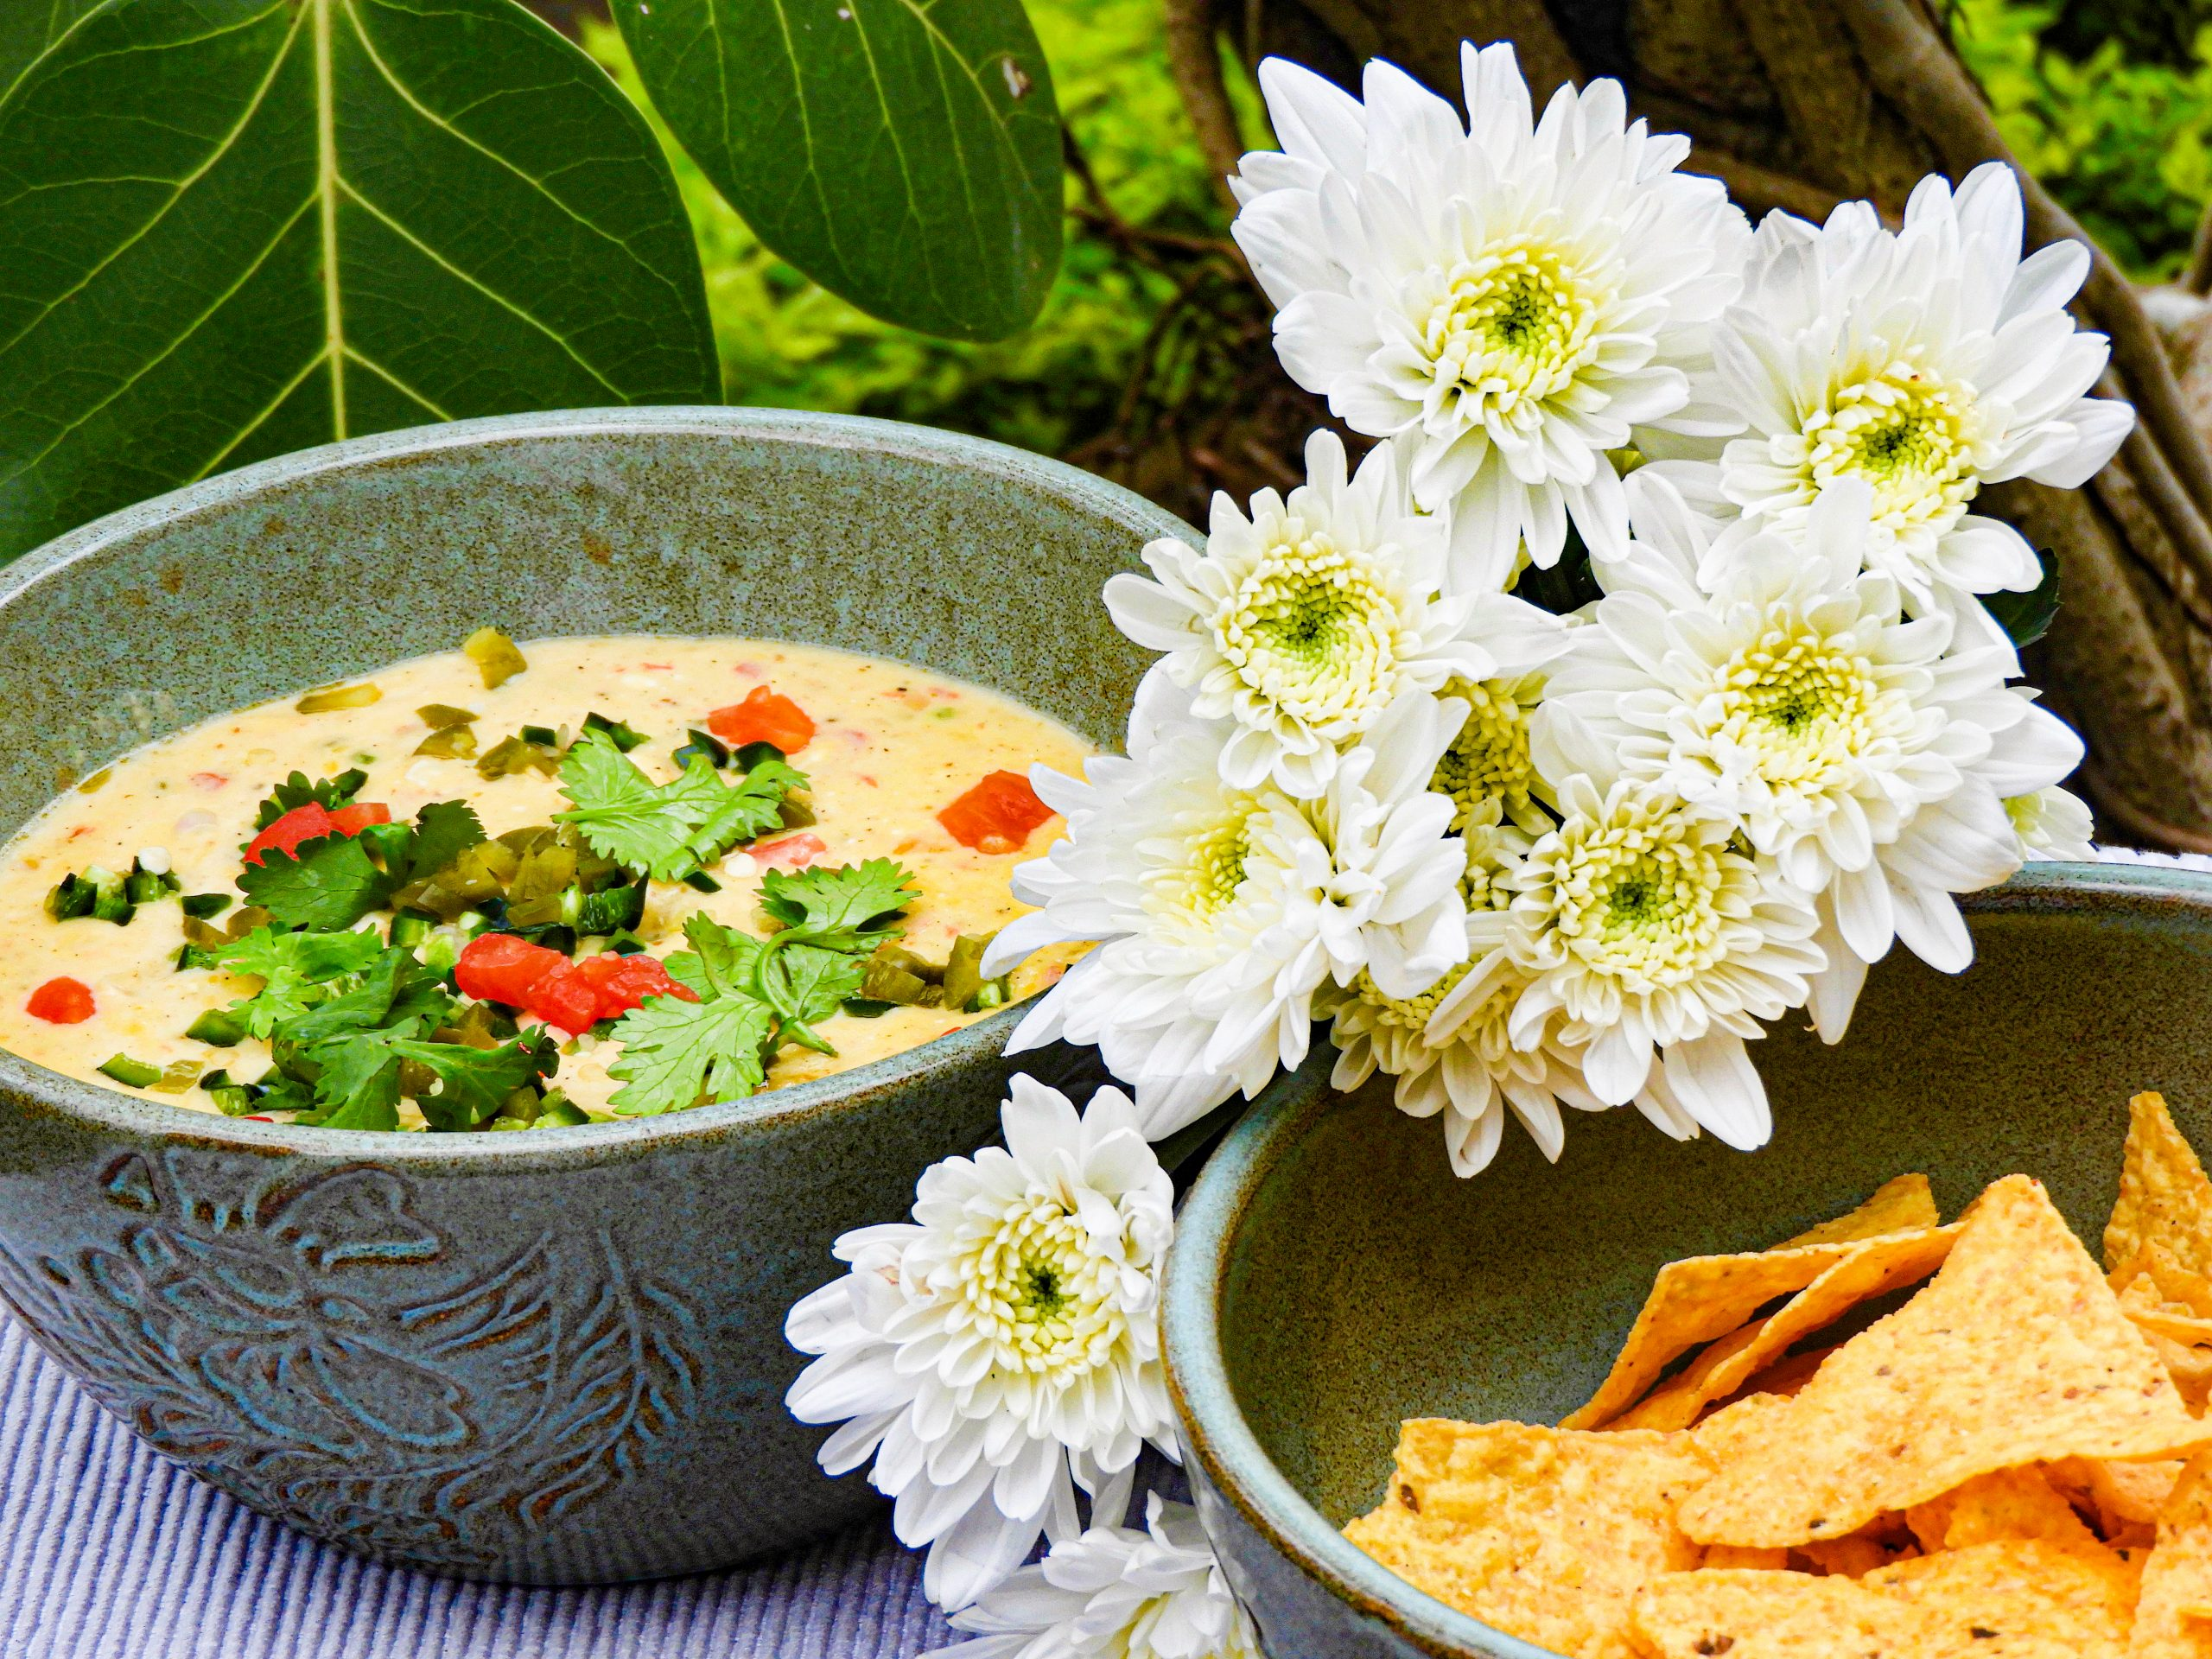 Tomato Jalapeno Queso with Nachos - Mexican Recipe at Kitchen by Nidhi